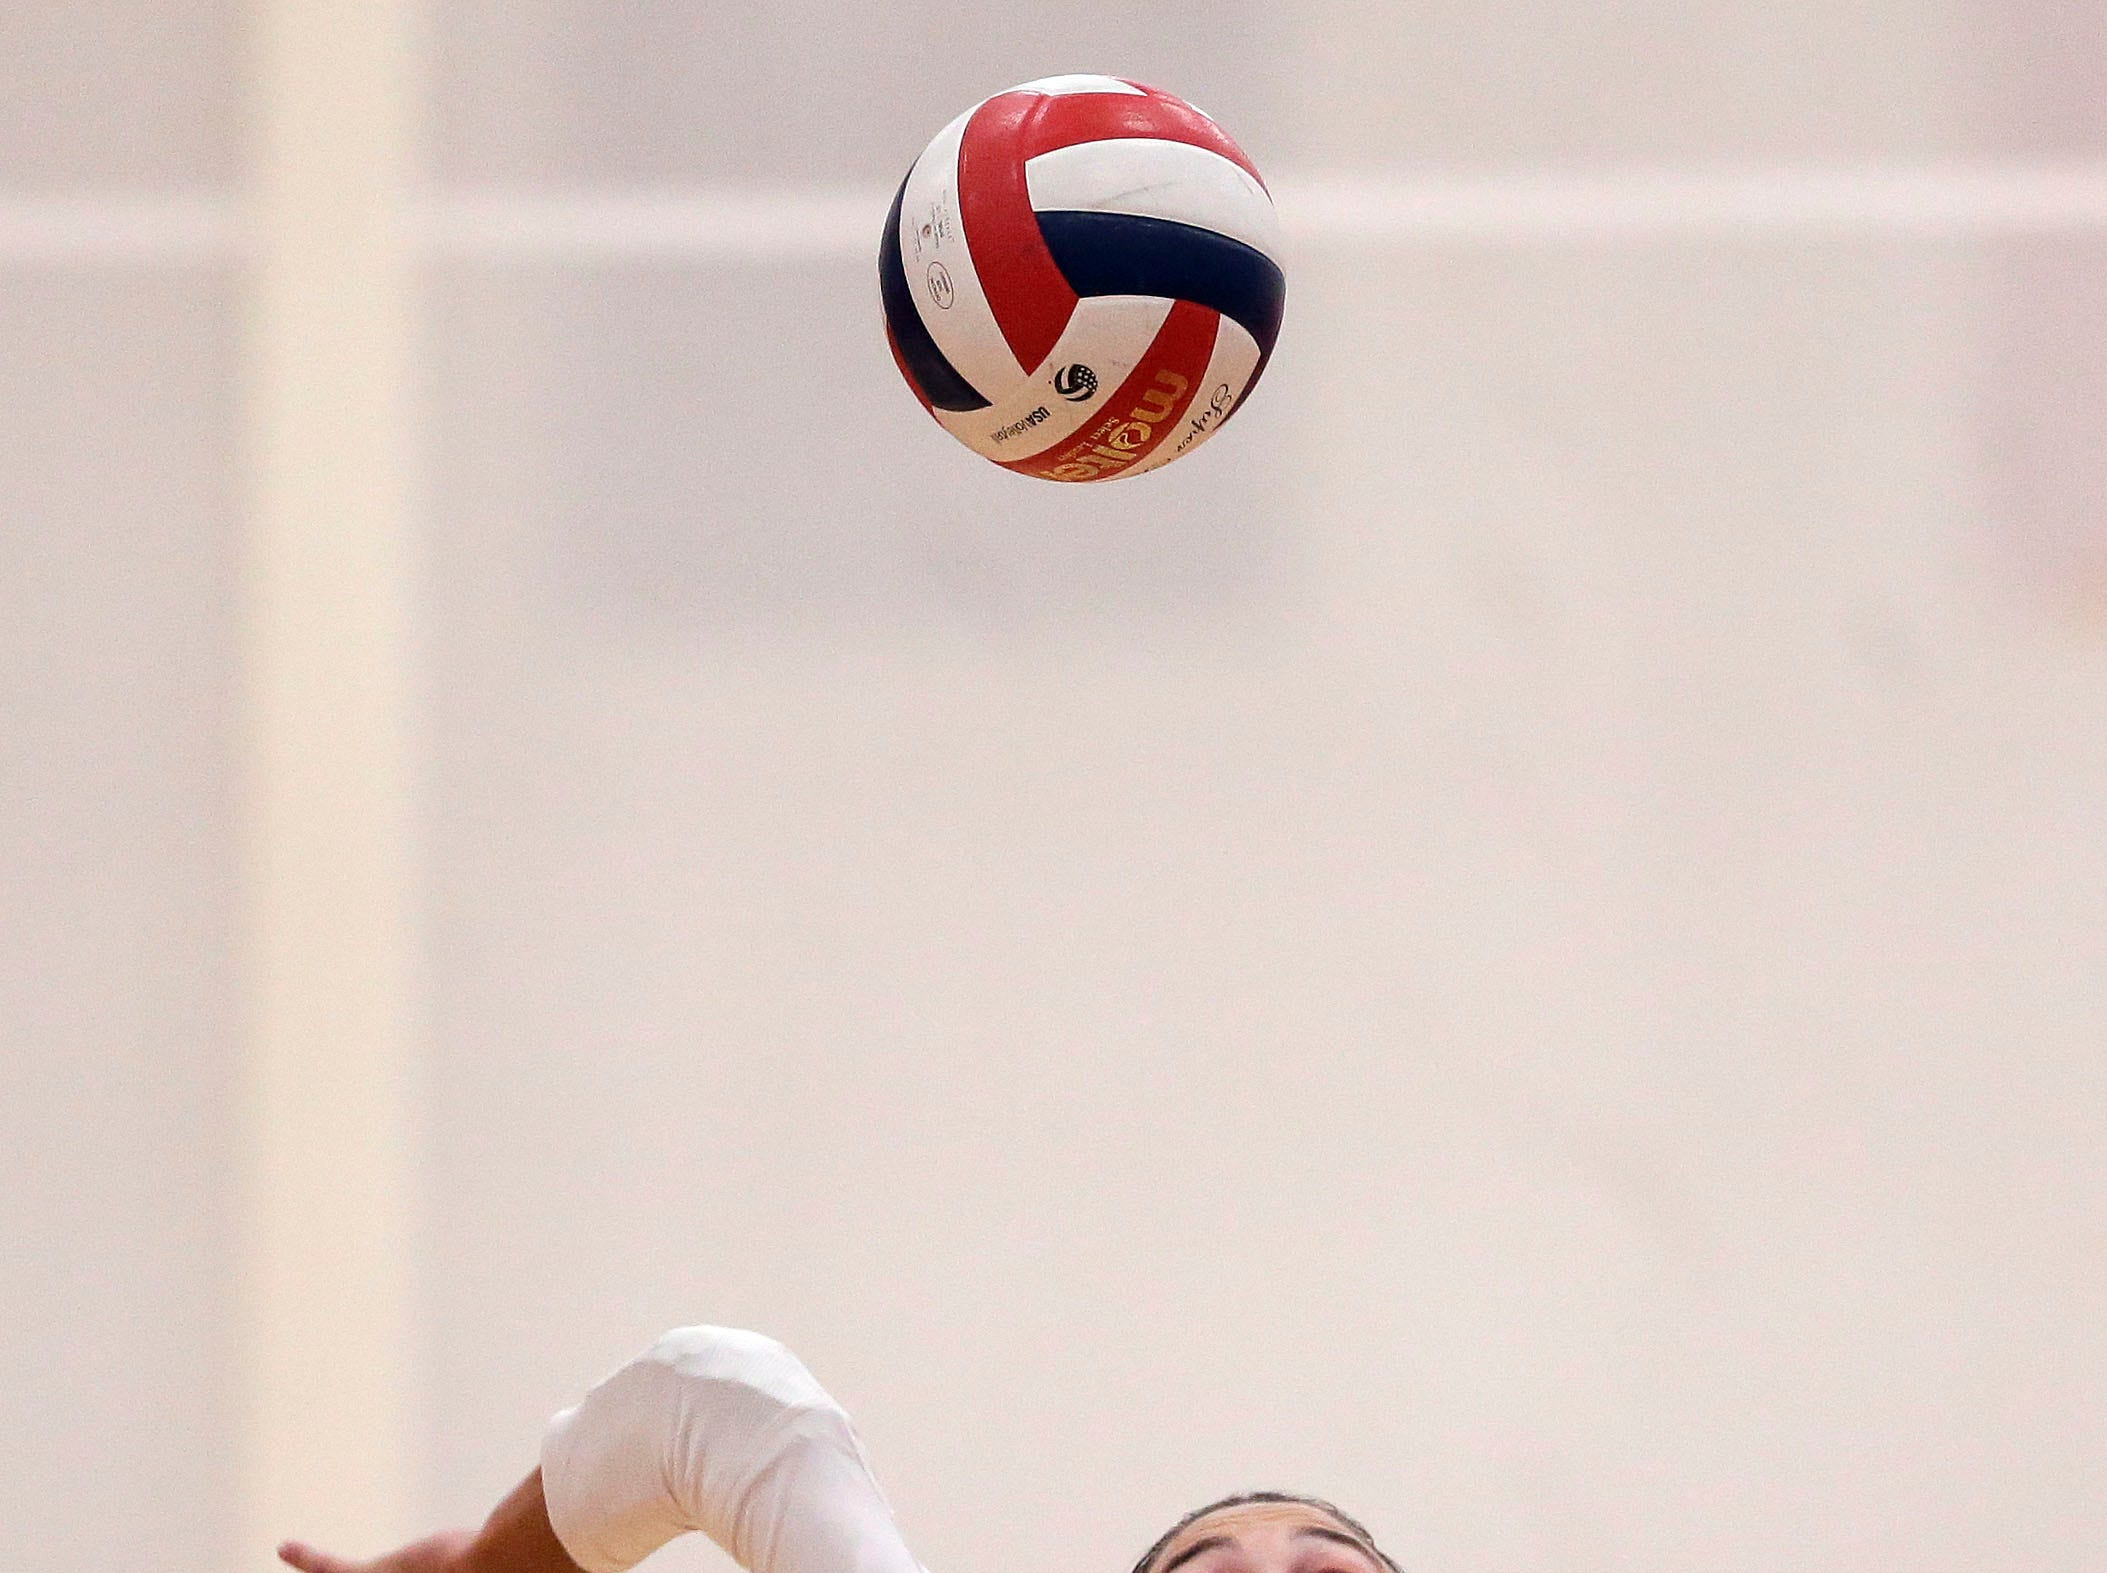 Maggie Cartwright of Kimberly hits against Neenah in FVA girls volleyball Tuesday, September 11, 2018, at Kimberly High School in Kimberly, Wis.Ron Page/USA TODAY NETWORK-Wisconsin